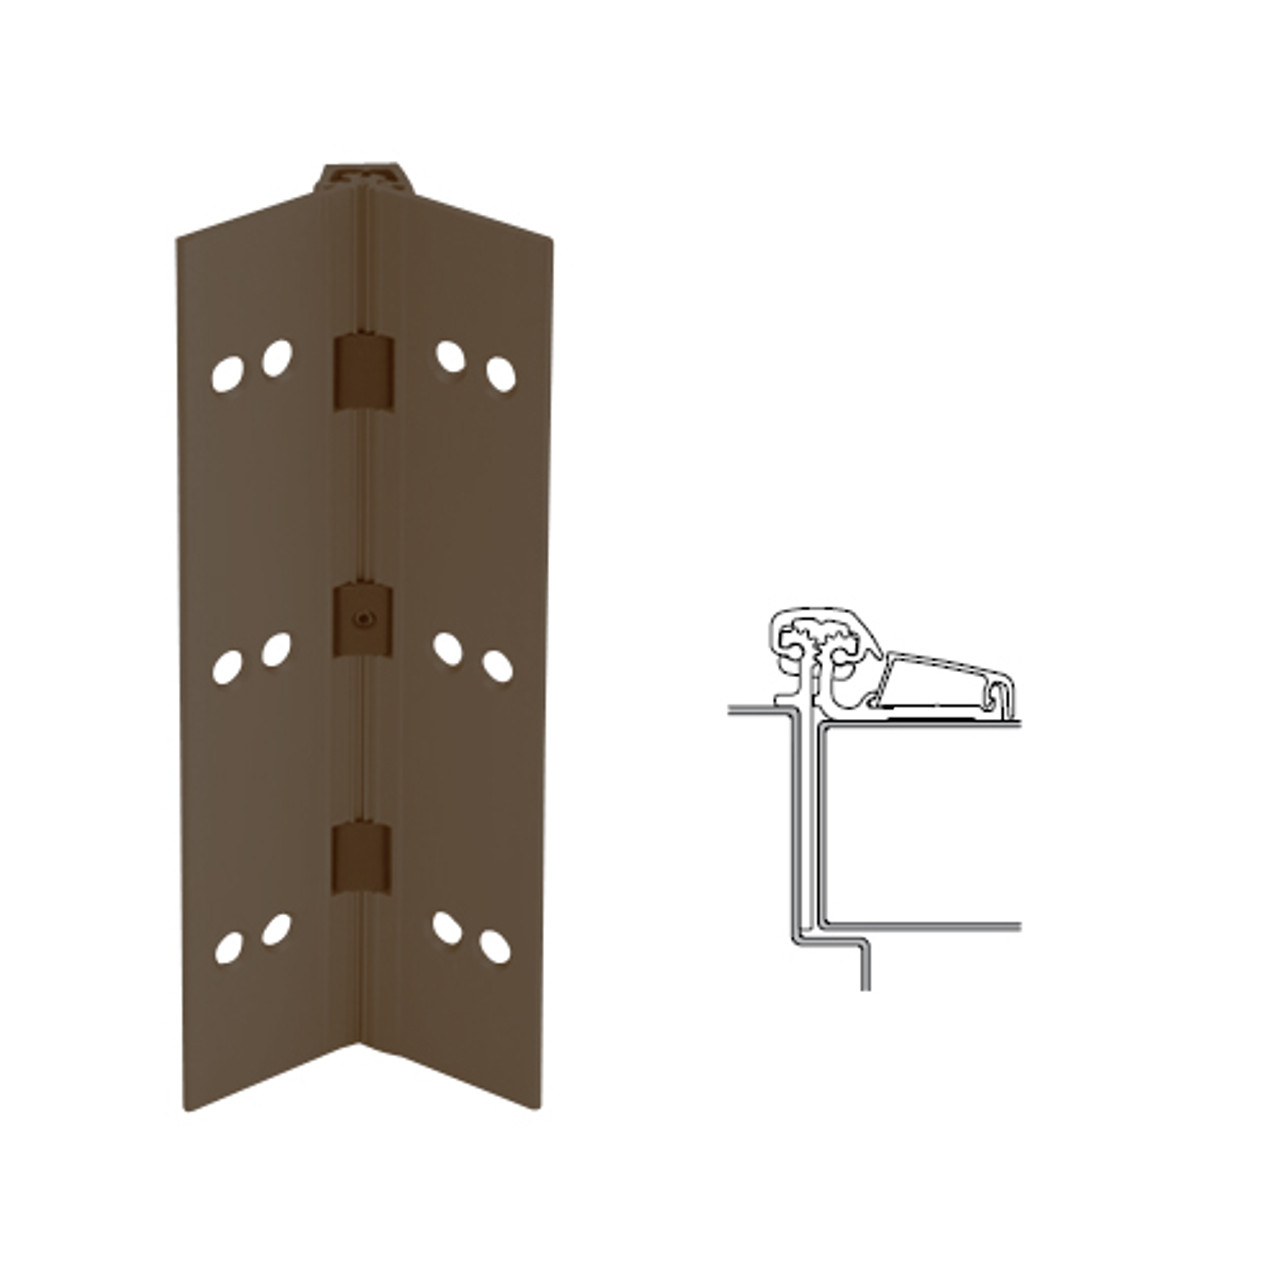 054XY-313AN-85-SECHM IVES Adjustable Half Surface Continuous Geared Hinges with Security Screws - Hex Pin Drive in Dark Bronze Anodized